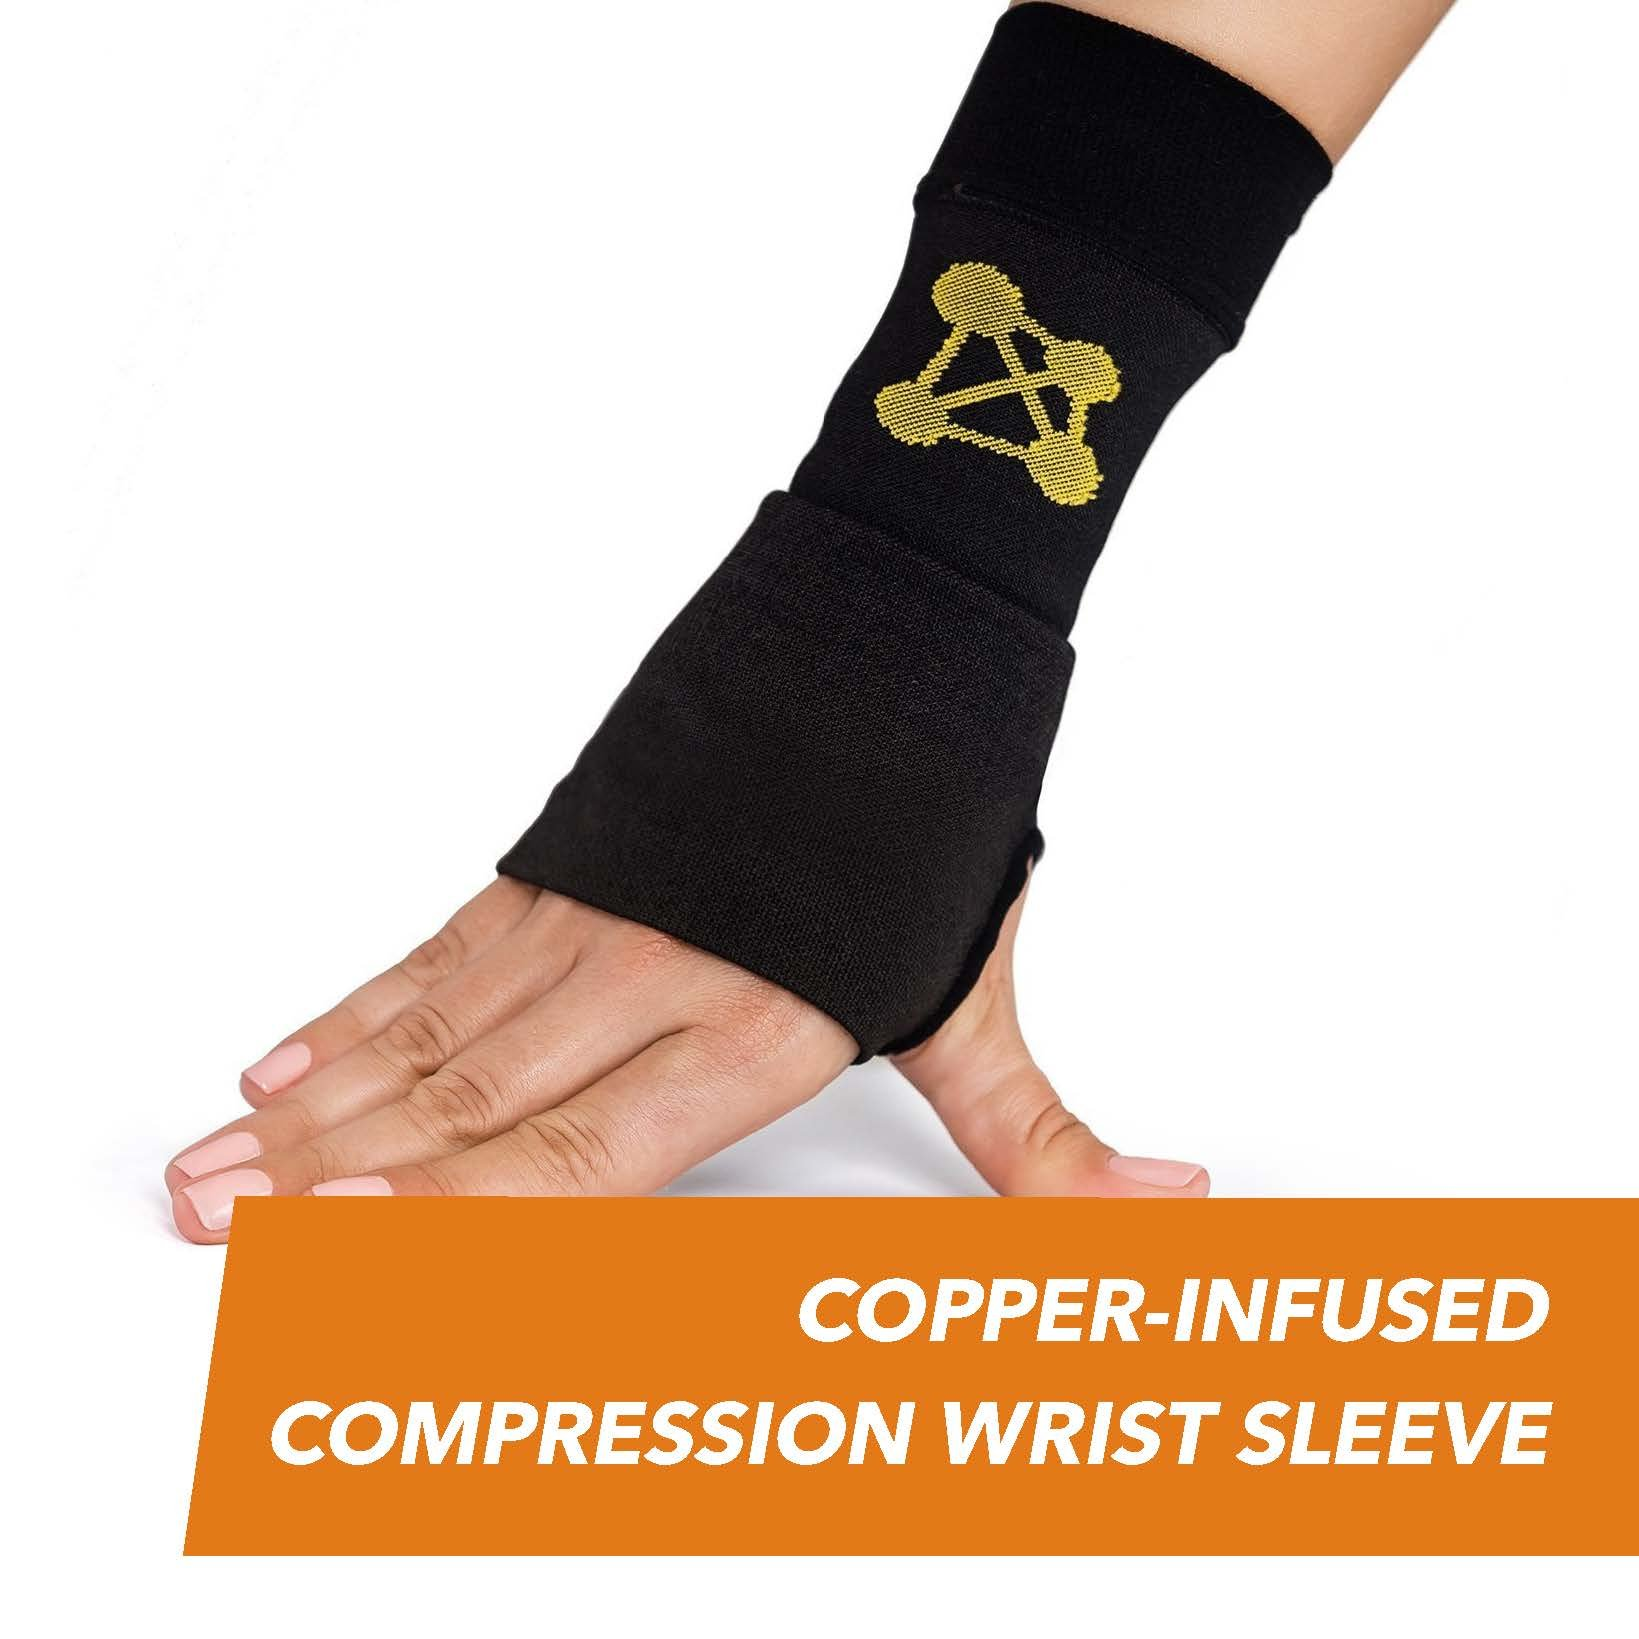 CopperJoint Copper-Infused Compression Wrist Sleeve, High-Performance Design Promotes Improved Circulation to Help Reduce Inflammation and Pain, Single Sleeve (Right, X-Large)